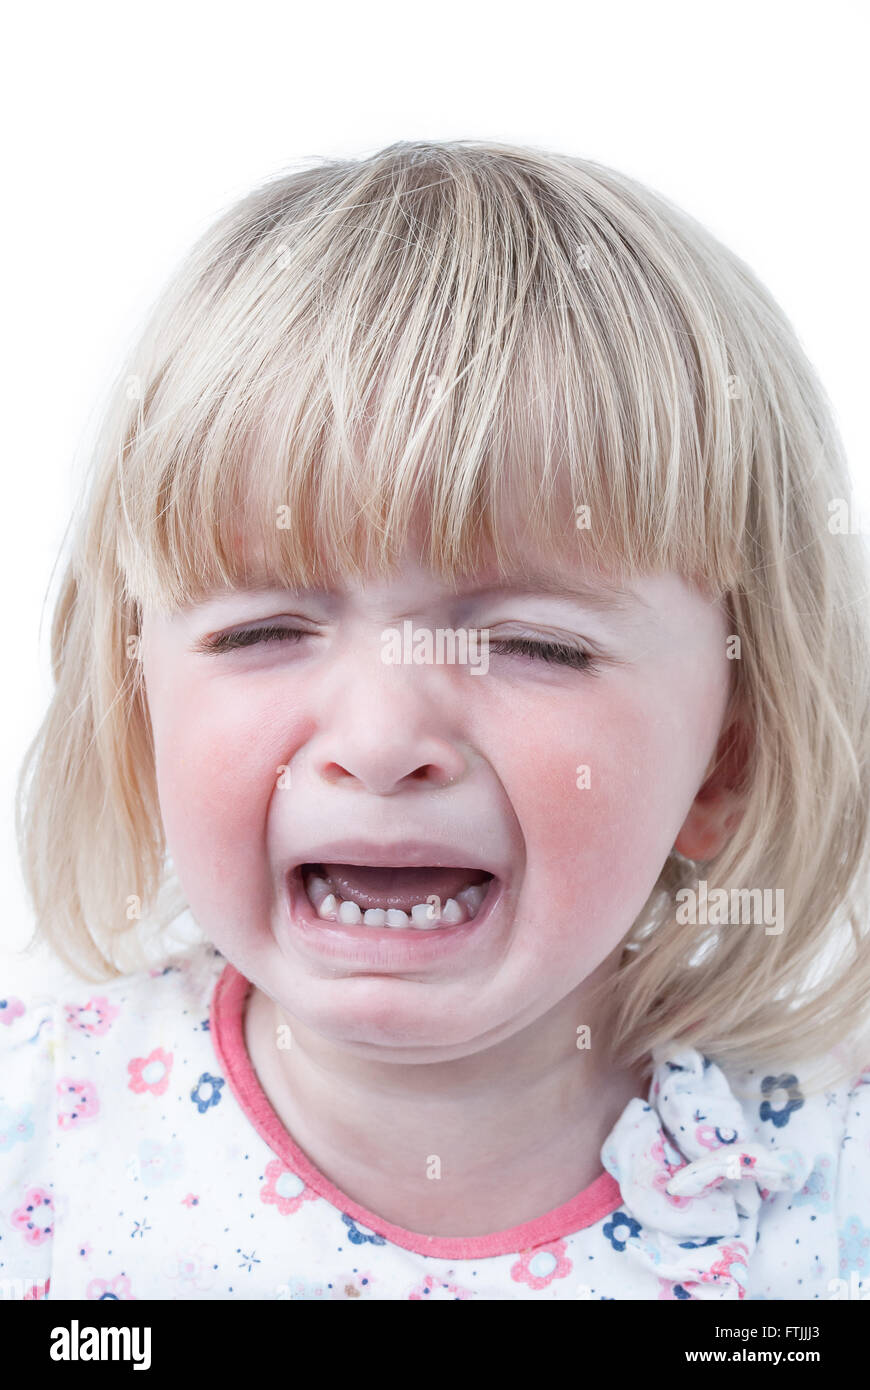 A crying teething baby girl with red swollen cheeks. - Stock Image